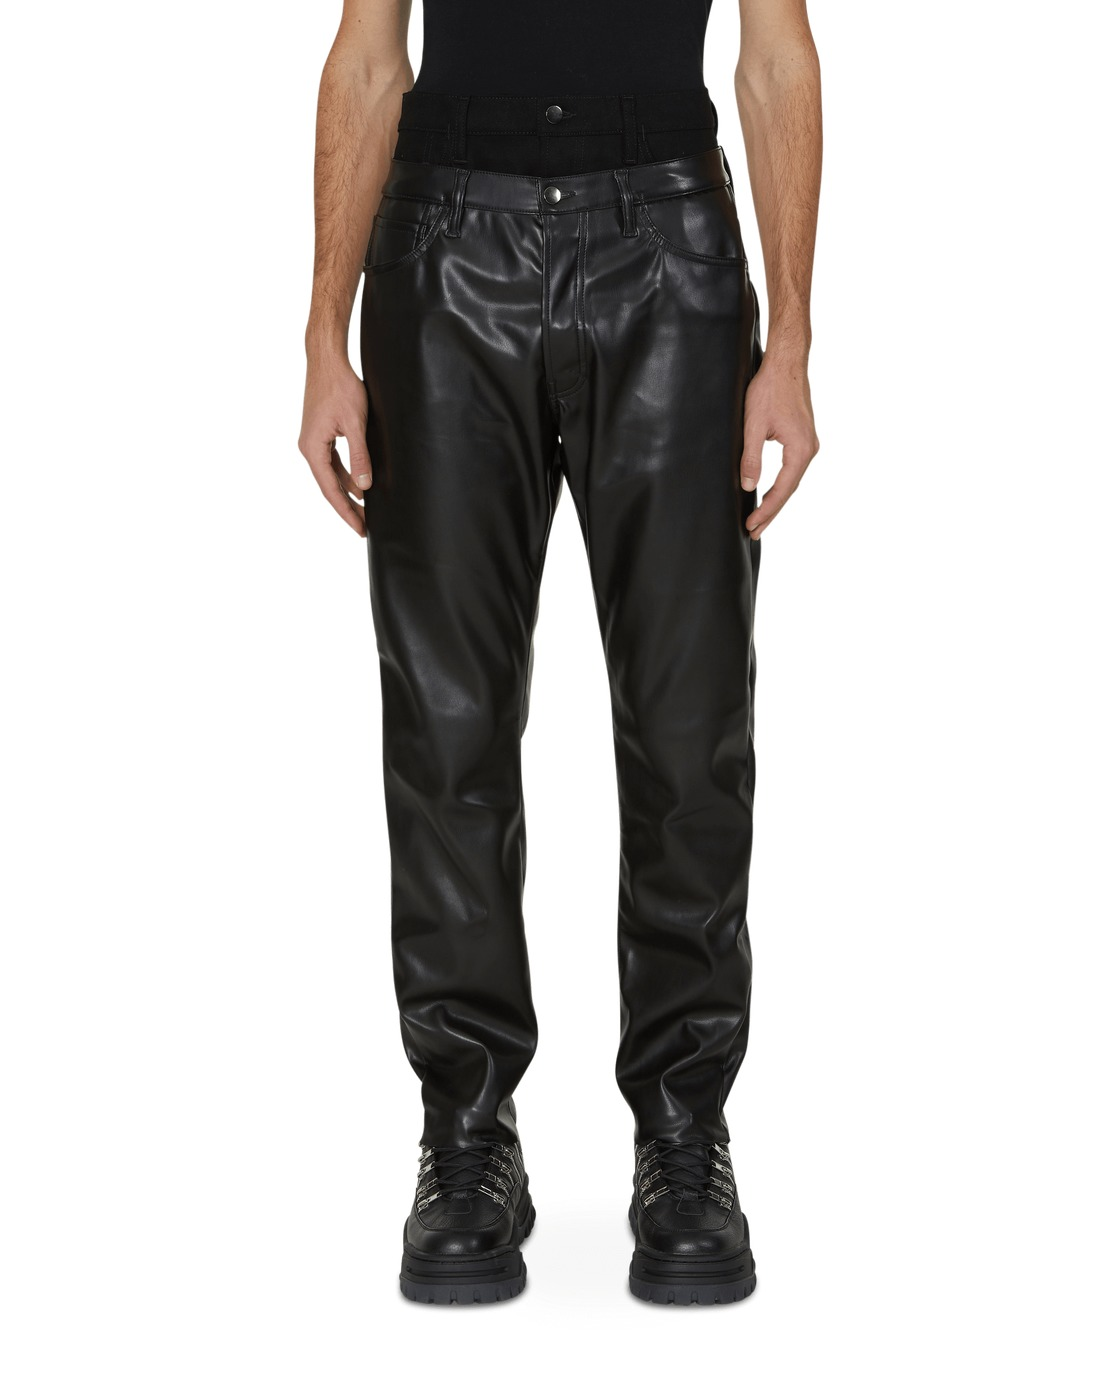 Aries Double Waisted Faux Leather Jeans Black